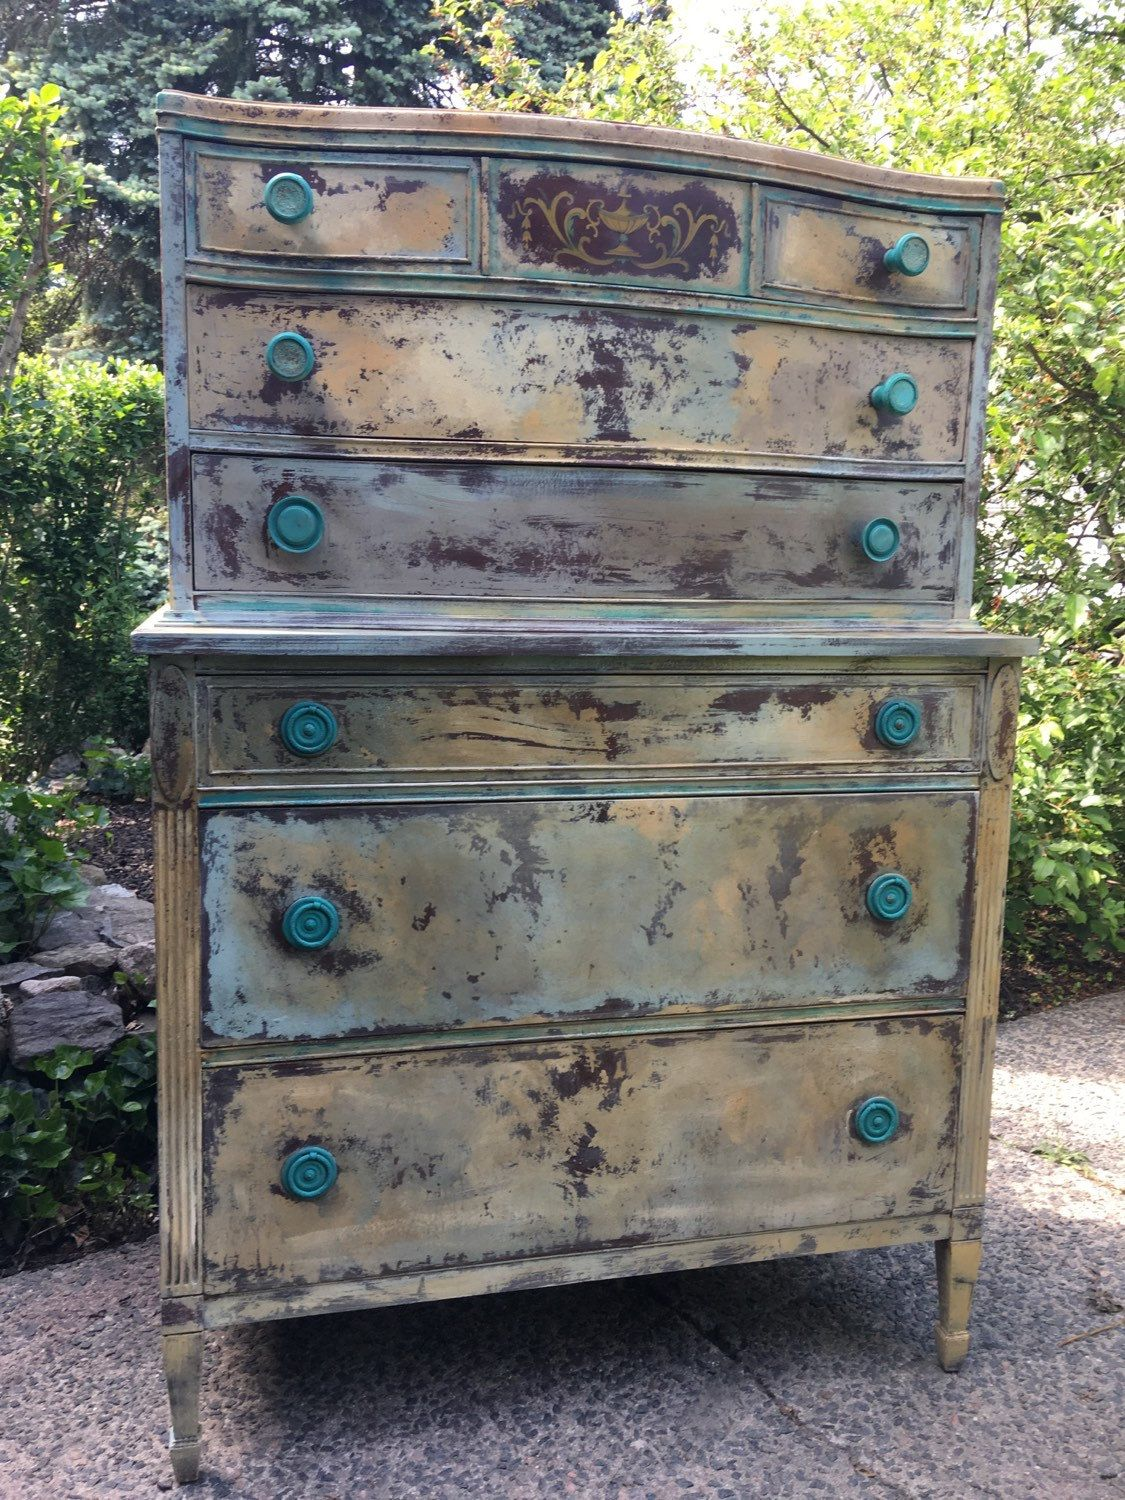 Yellow shabby chic furniture - Painted Dresser Bohemian Dresser Vintage Dresser French Country Shabby Chic Dresser French Provincial Farmhouse Rustic Dresser